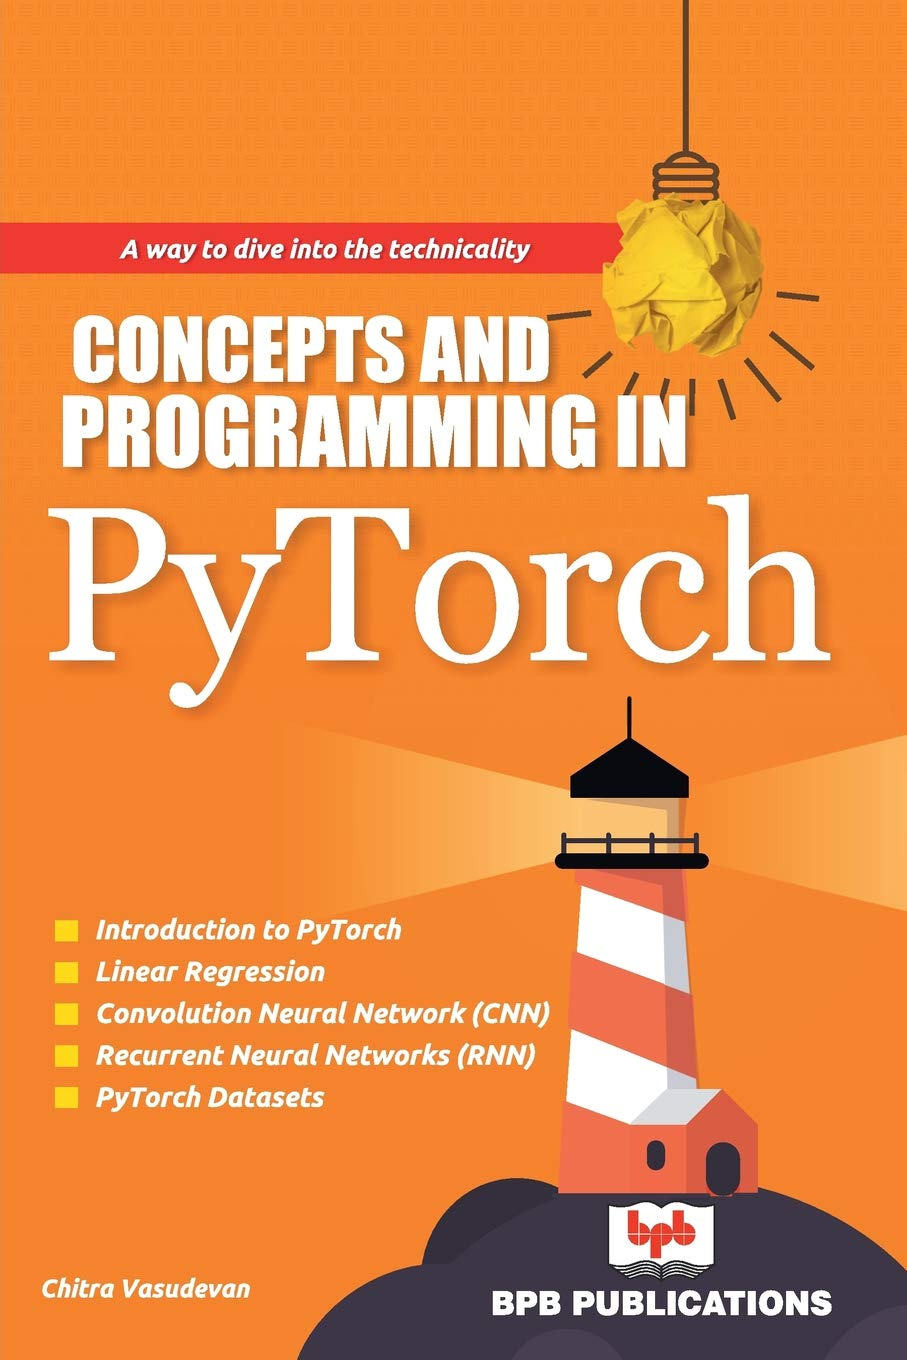 Concepts and Programming in PyTorch: Chitra Vasudevan